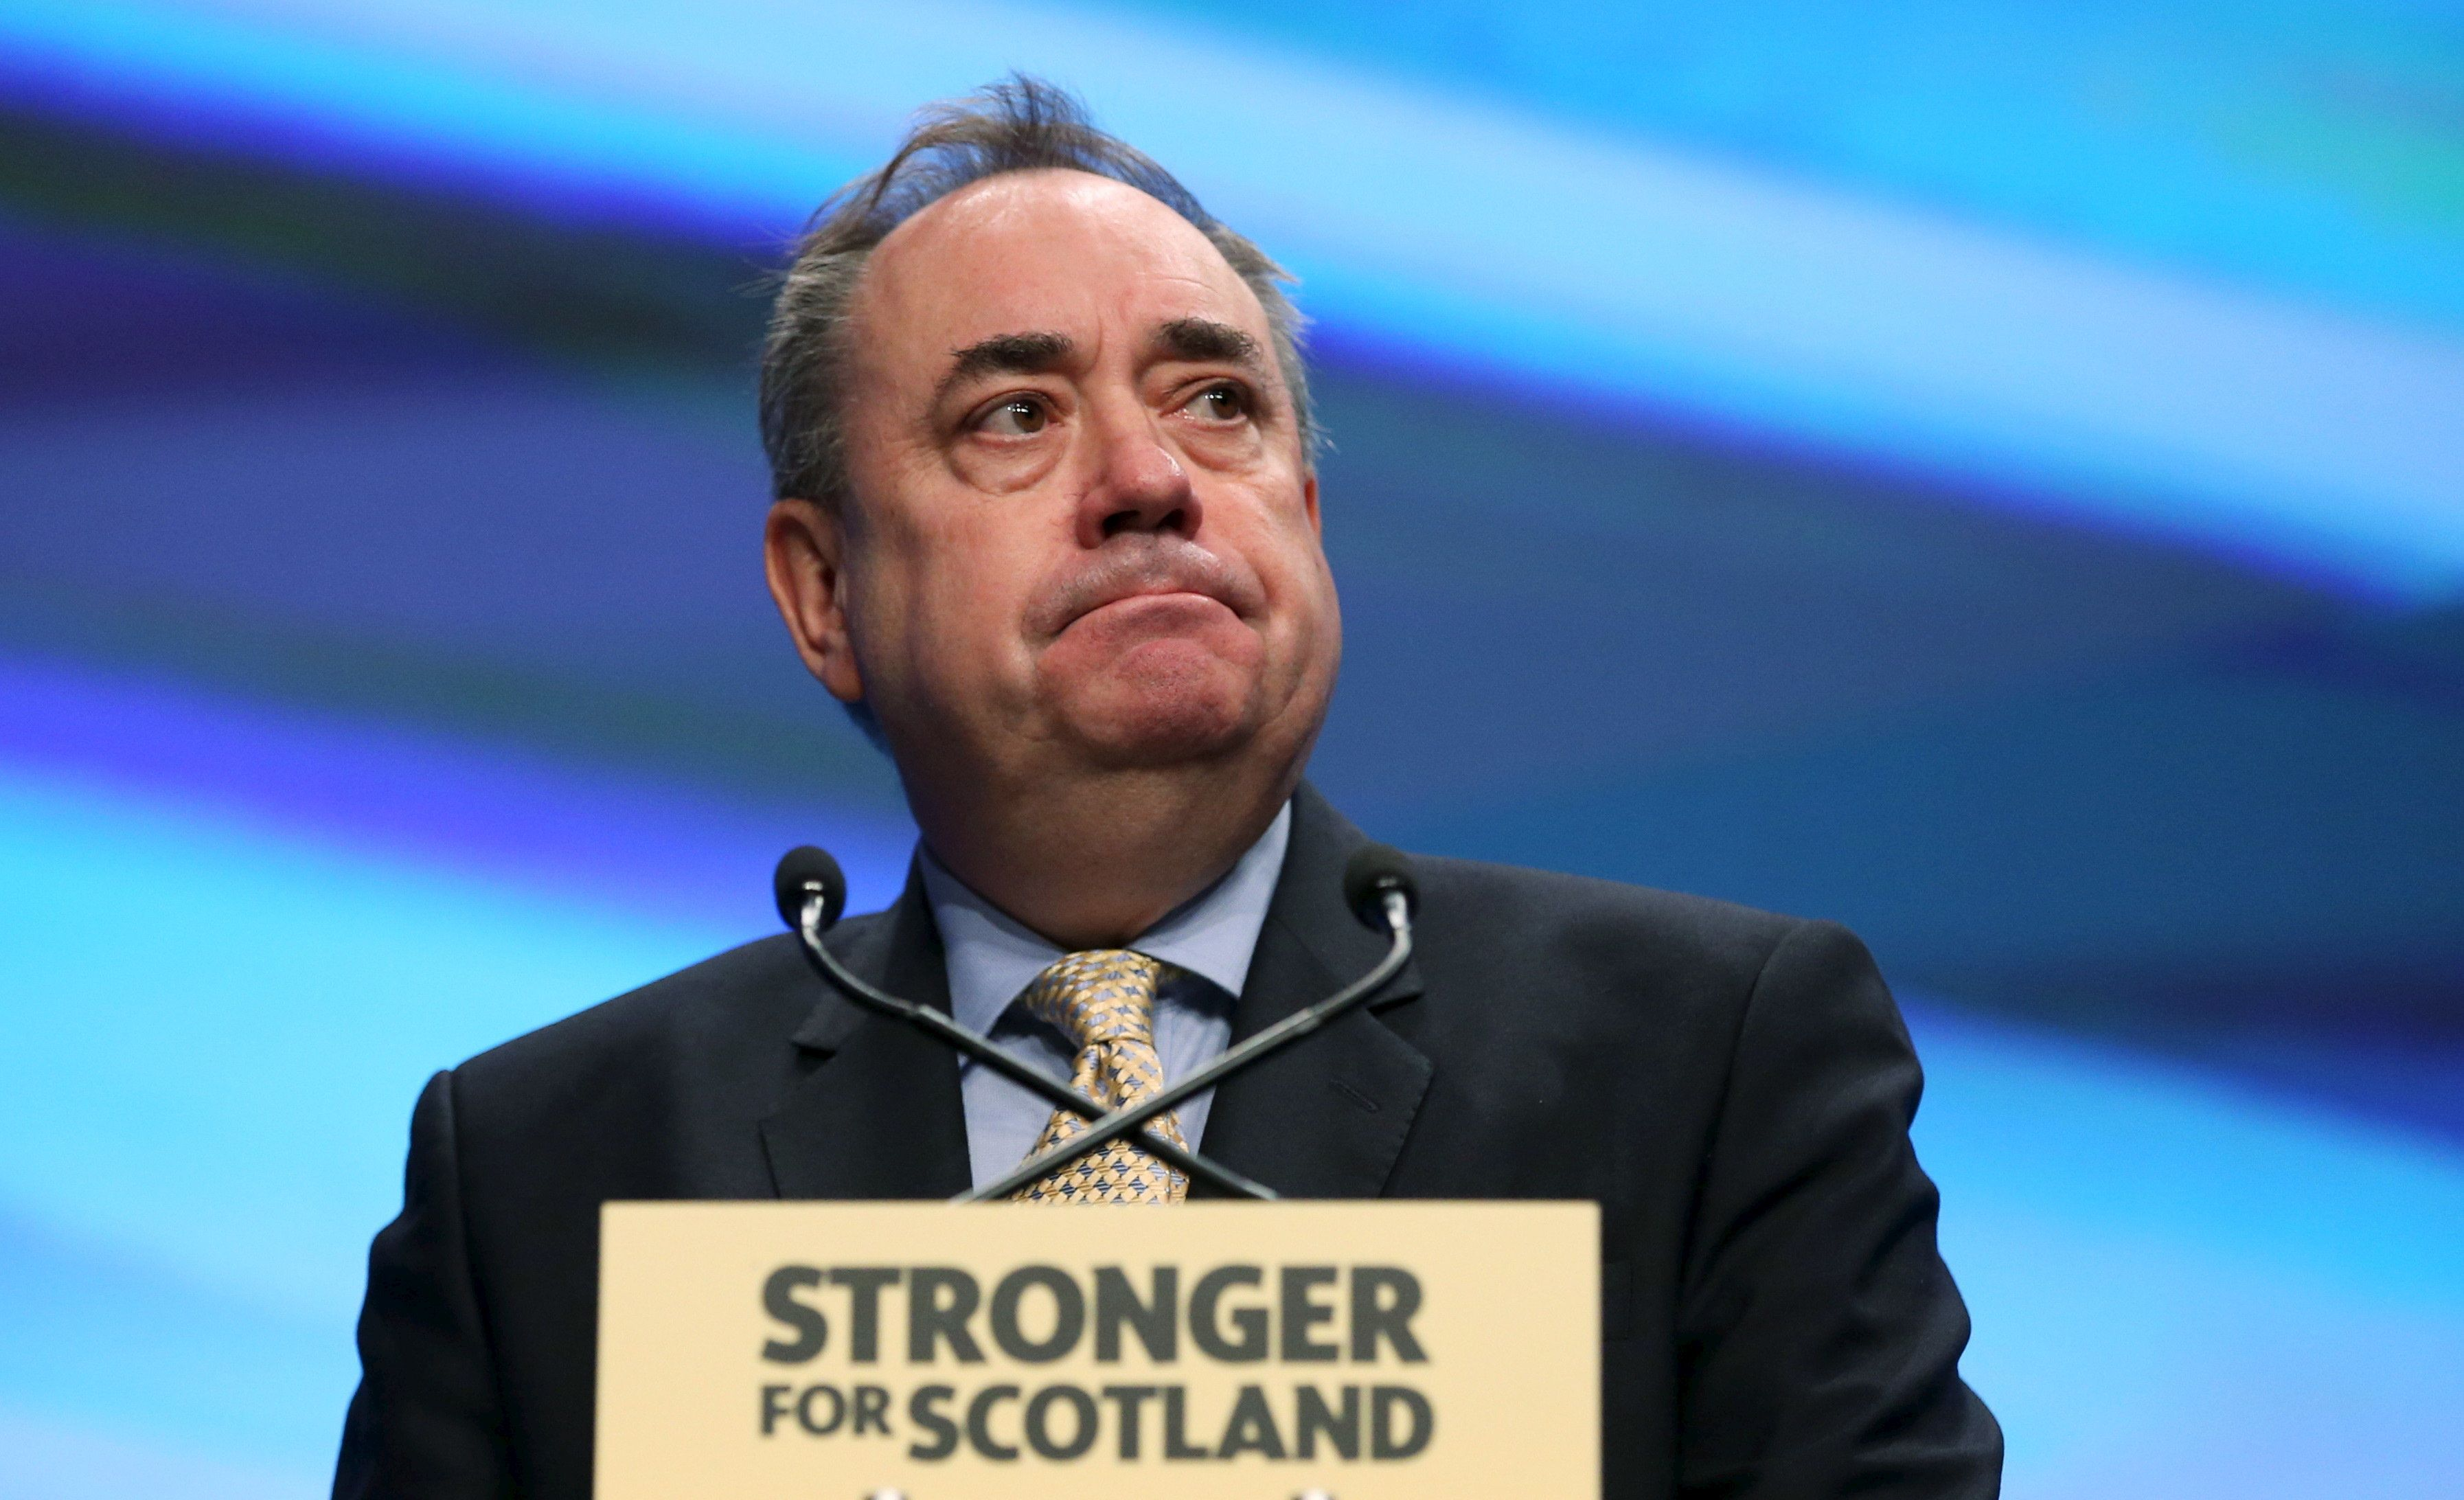 Alex Salmond Takes Scottish Government To Court Over Handling Of Sexual Assault